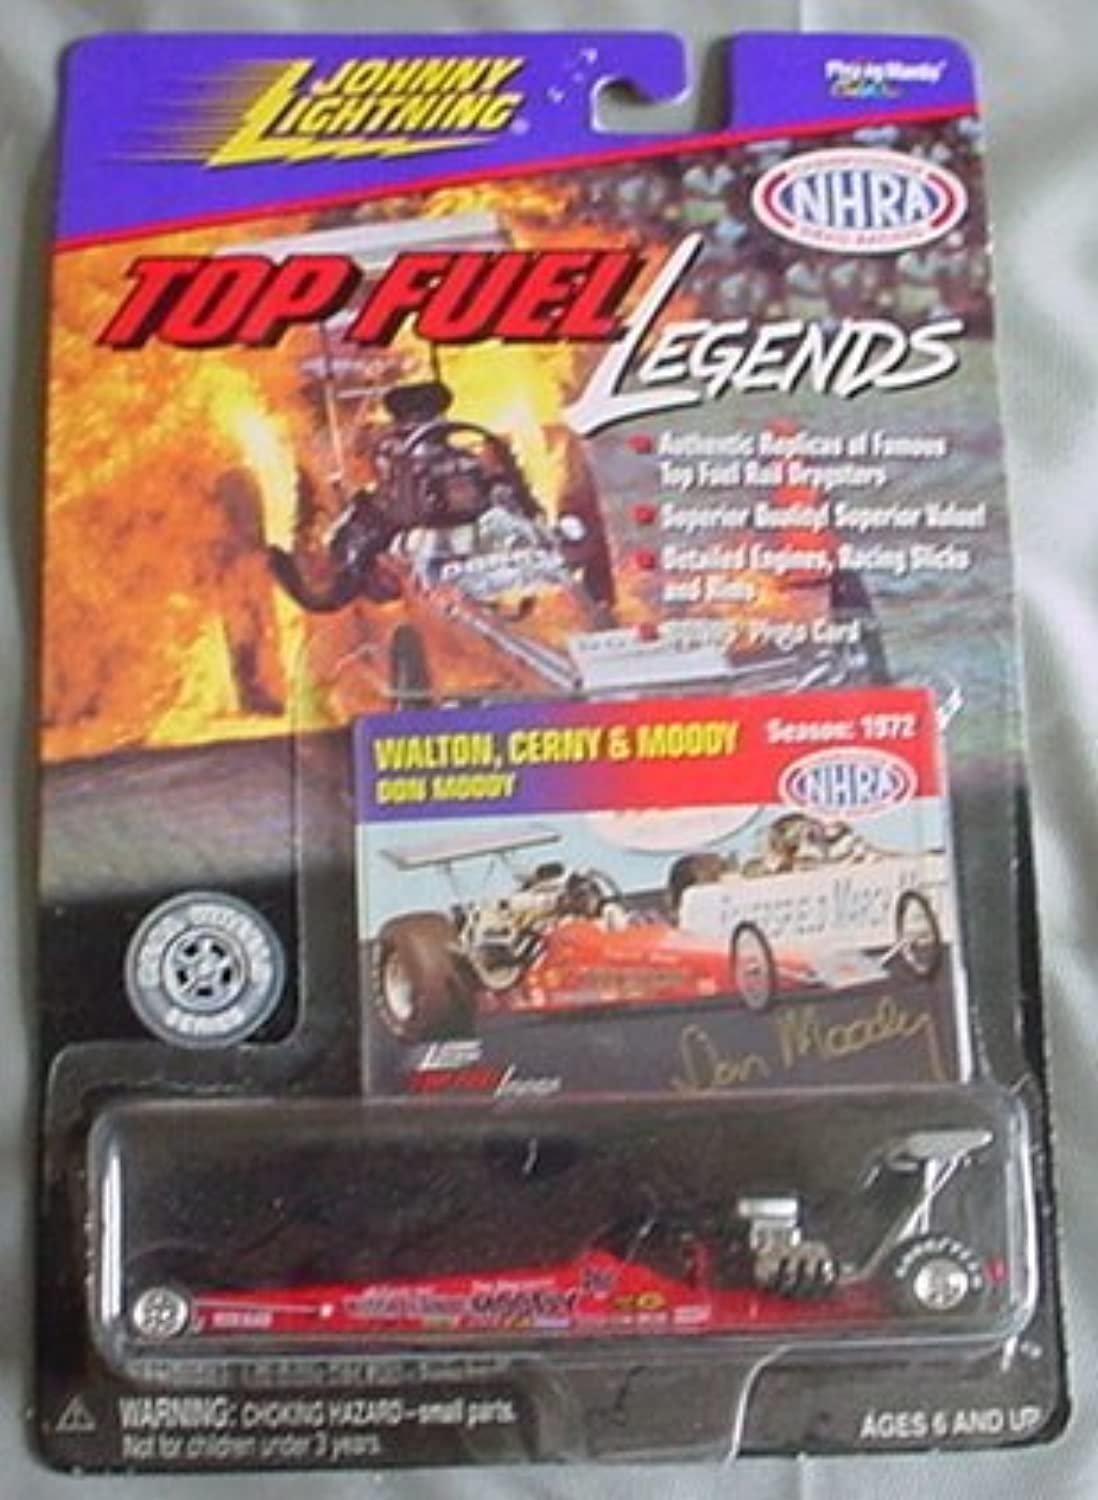 Johnny Lightning Top Fuel Legends NHRA Walton Cerny & Moody Don Moody rot by Playing Manits